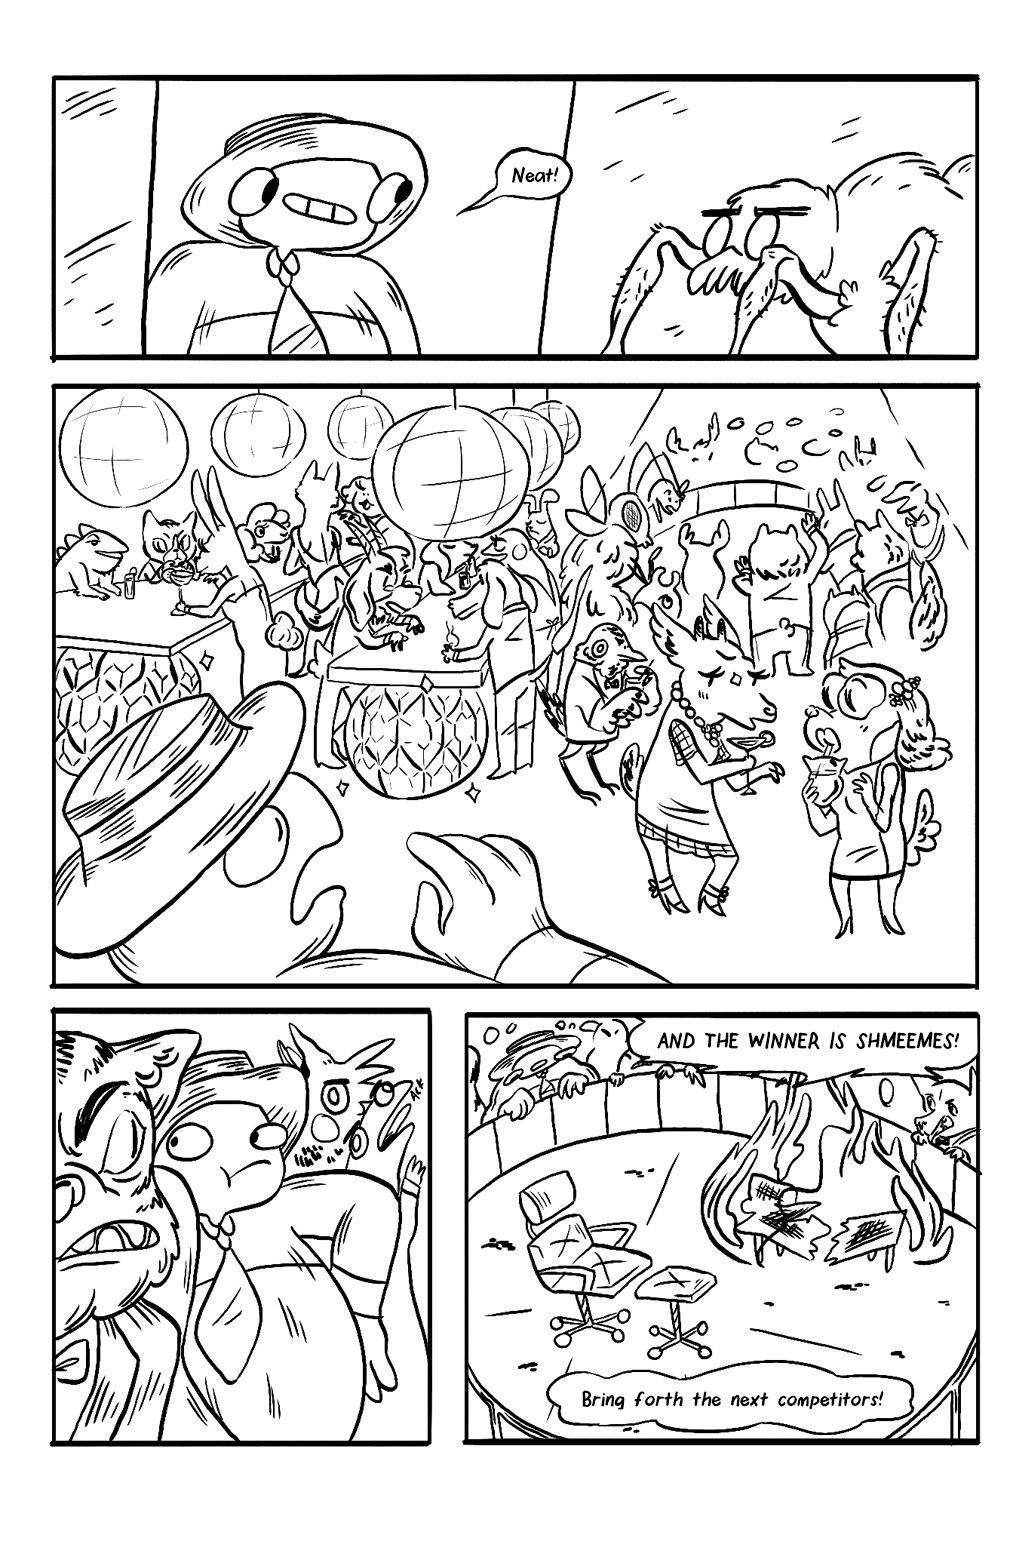 03_page14_web.png